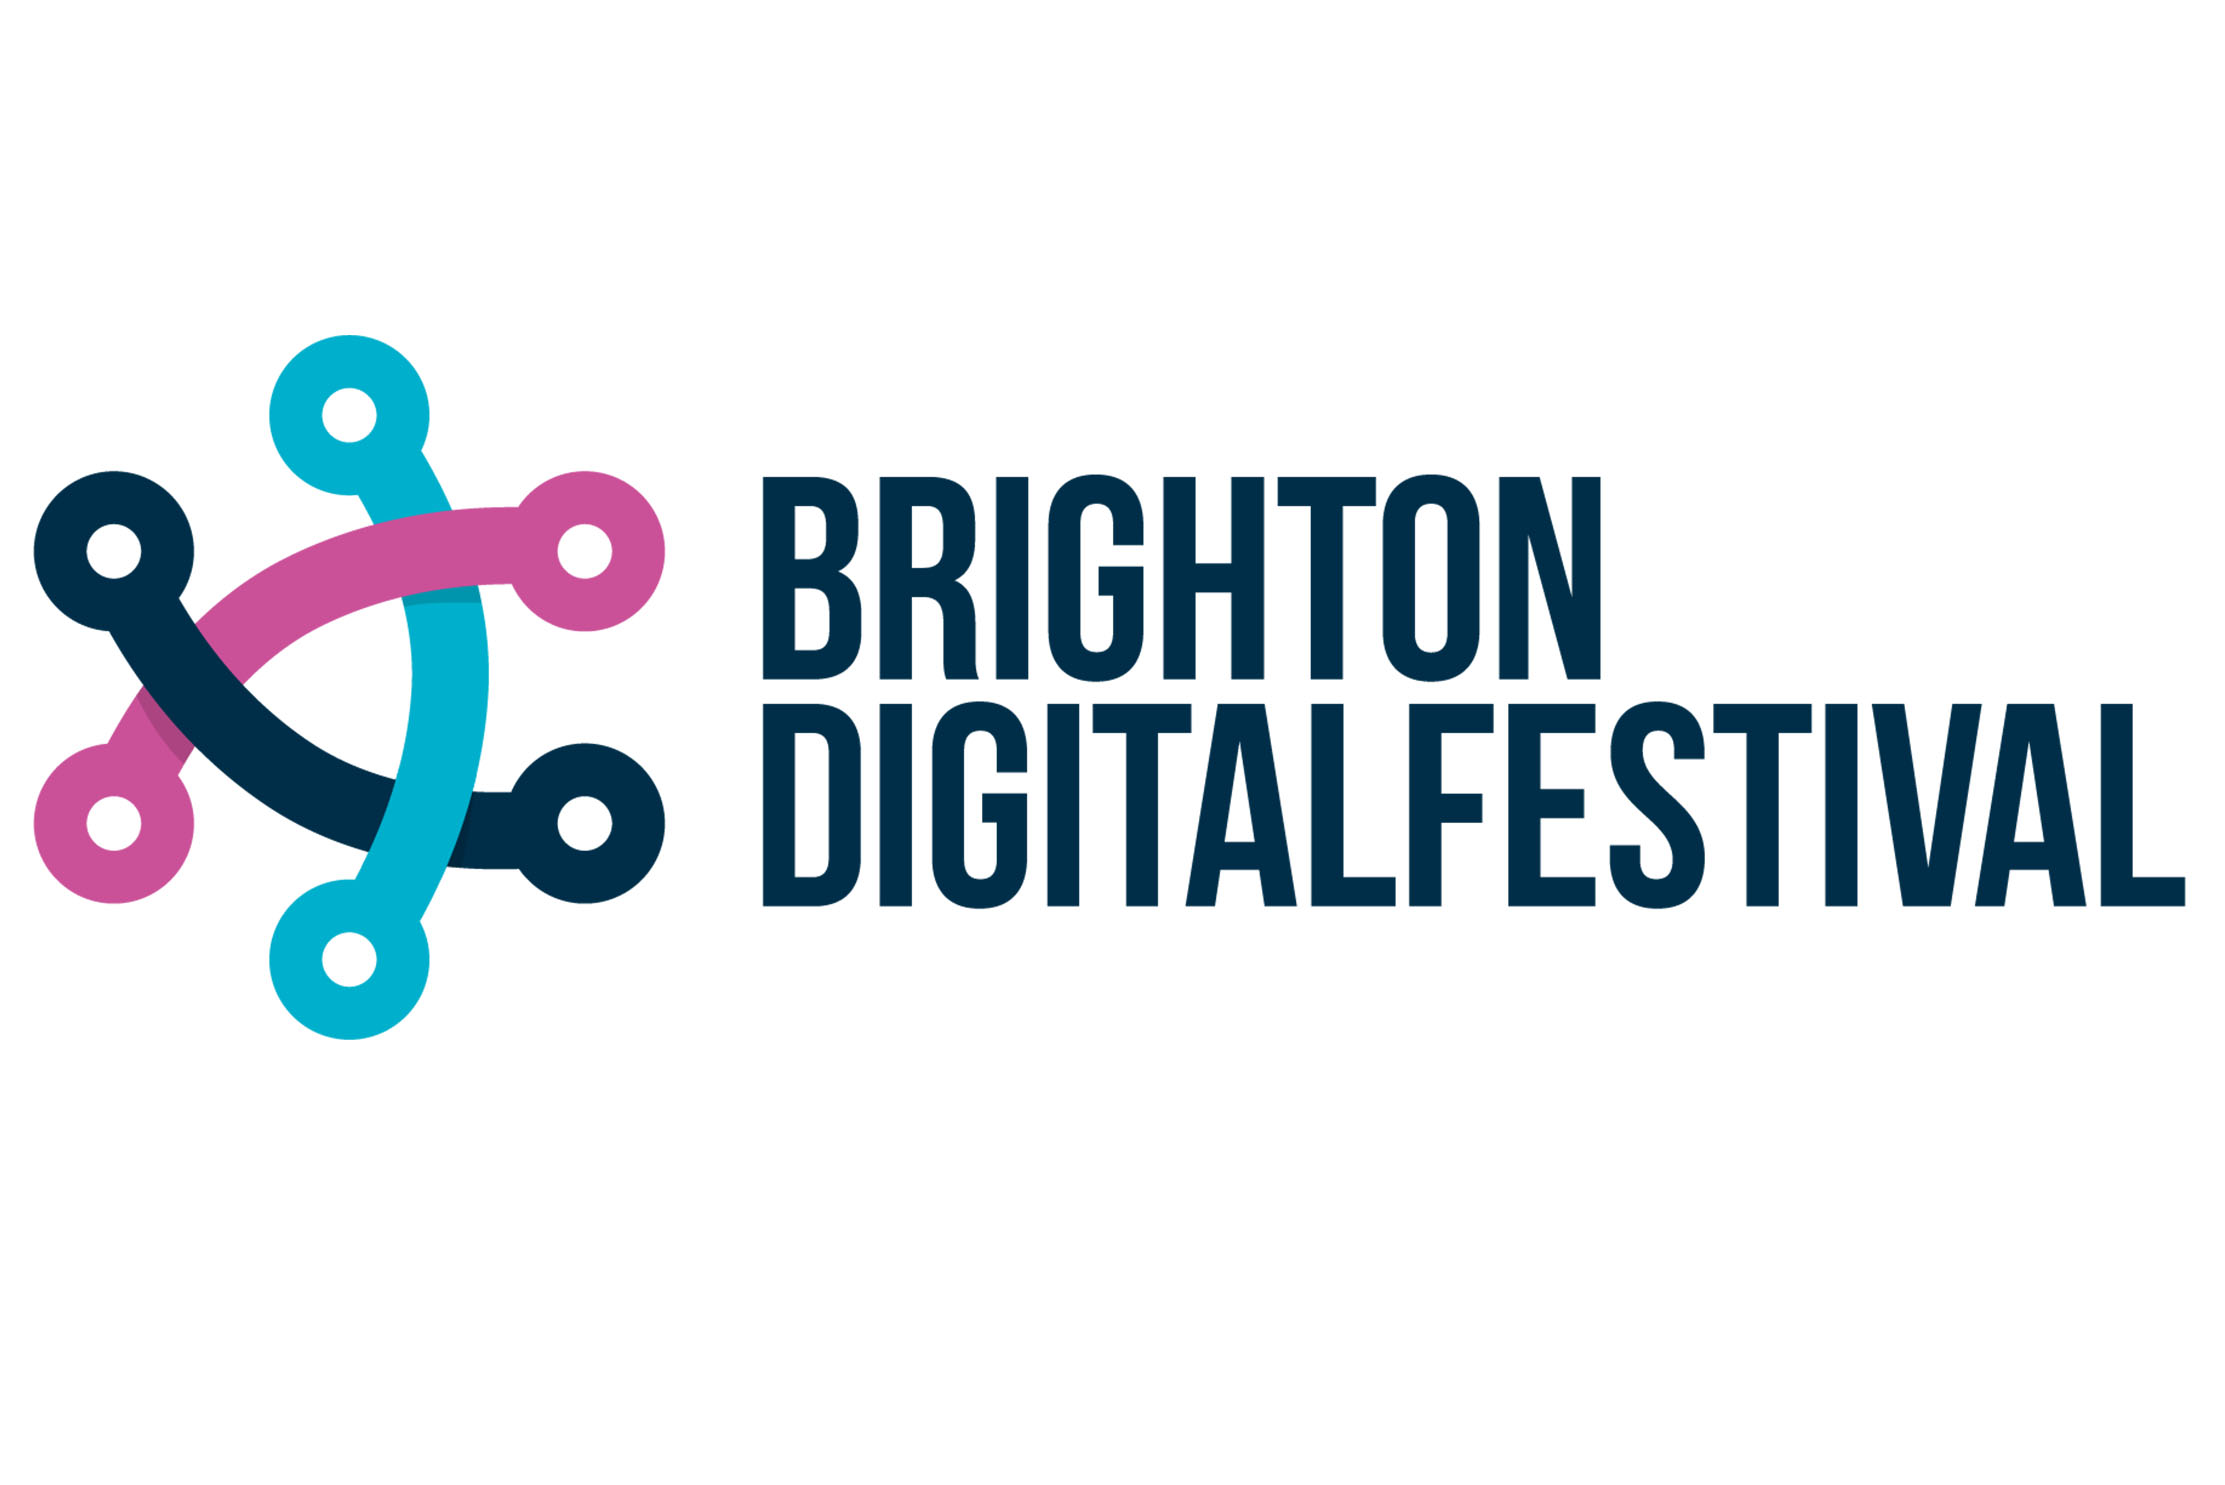 Brighton Digital Festival is transforming. We speak to Lighthouse CEO Alli Beddoes, about how this city event brings together art, technology and community